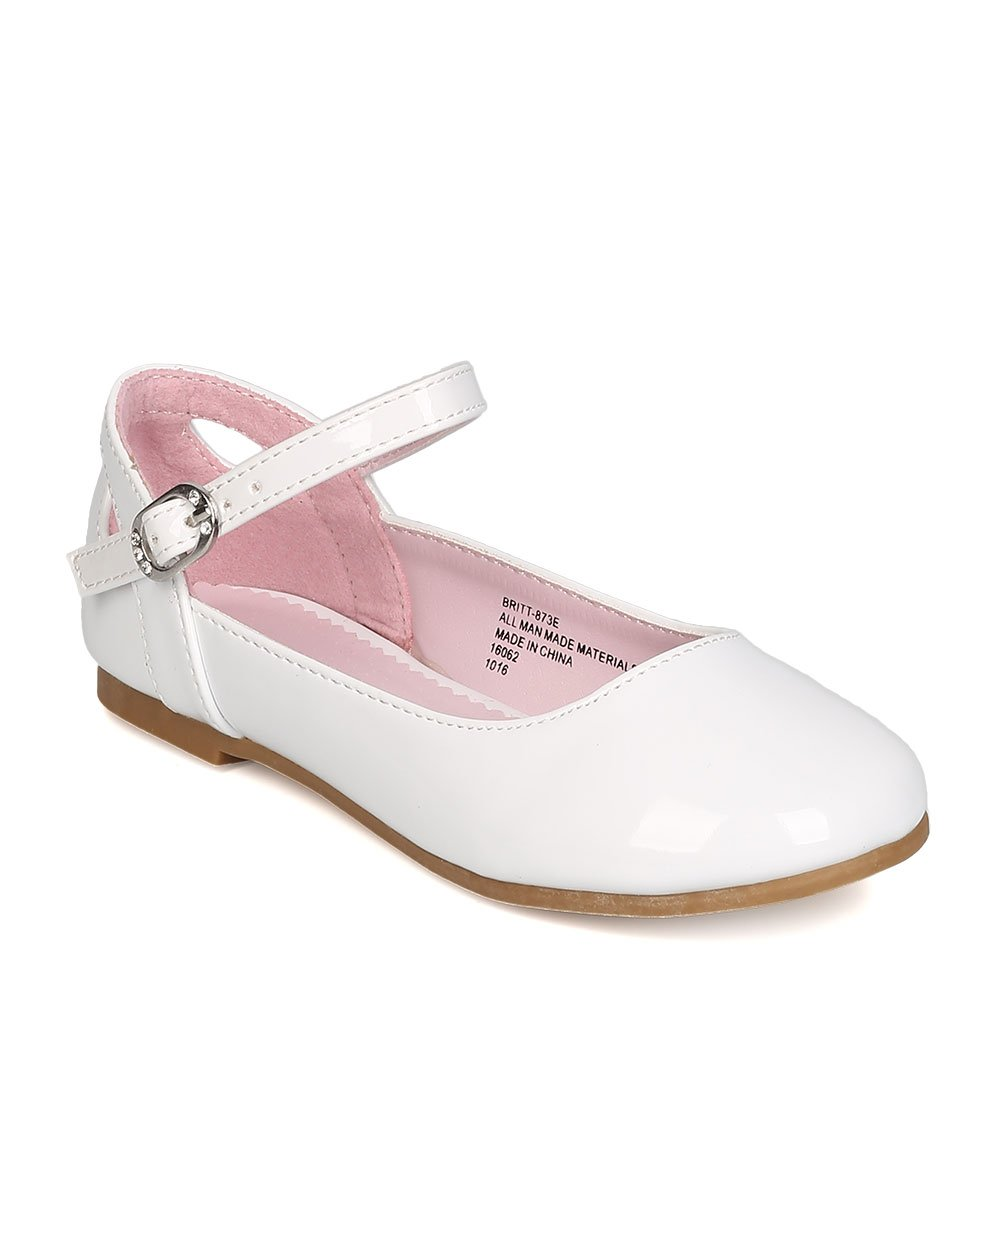 Girls Patent Leatherette Ankle Strap Cut Out Ballet Flat GB41 - White (Size: Little Kid 11)